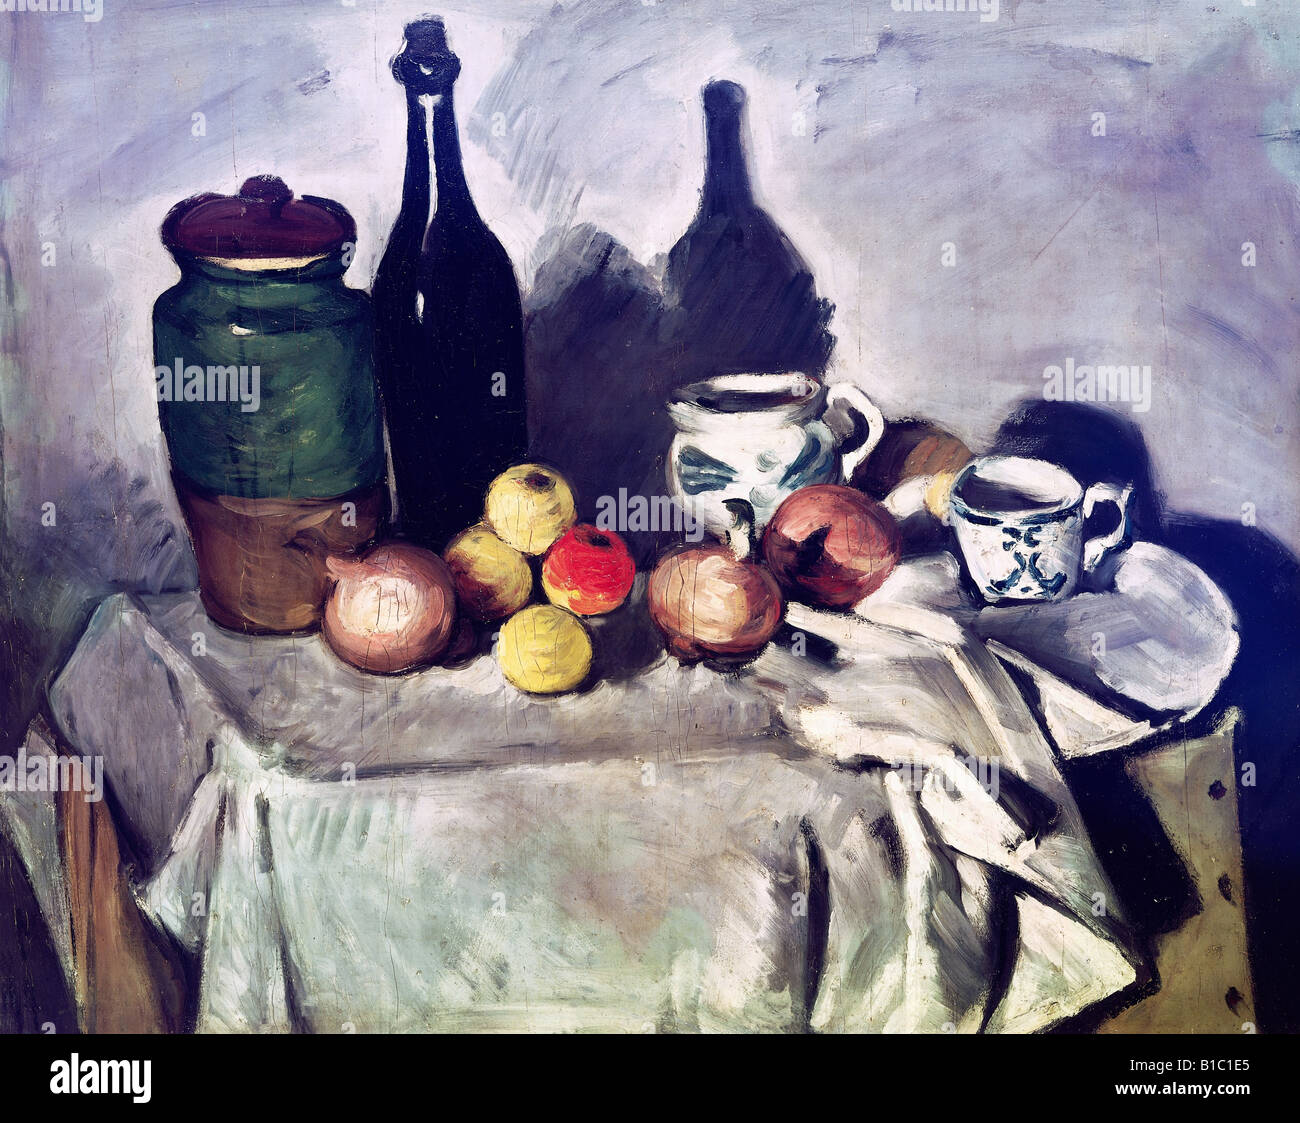 "fine arts, Cezanne, Paul, (19.1.1893 - 22.10.1906), painting, ""Still Life with Fruits and Dishes"", around 1869  Stock Photo"